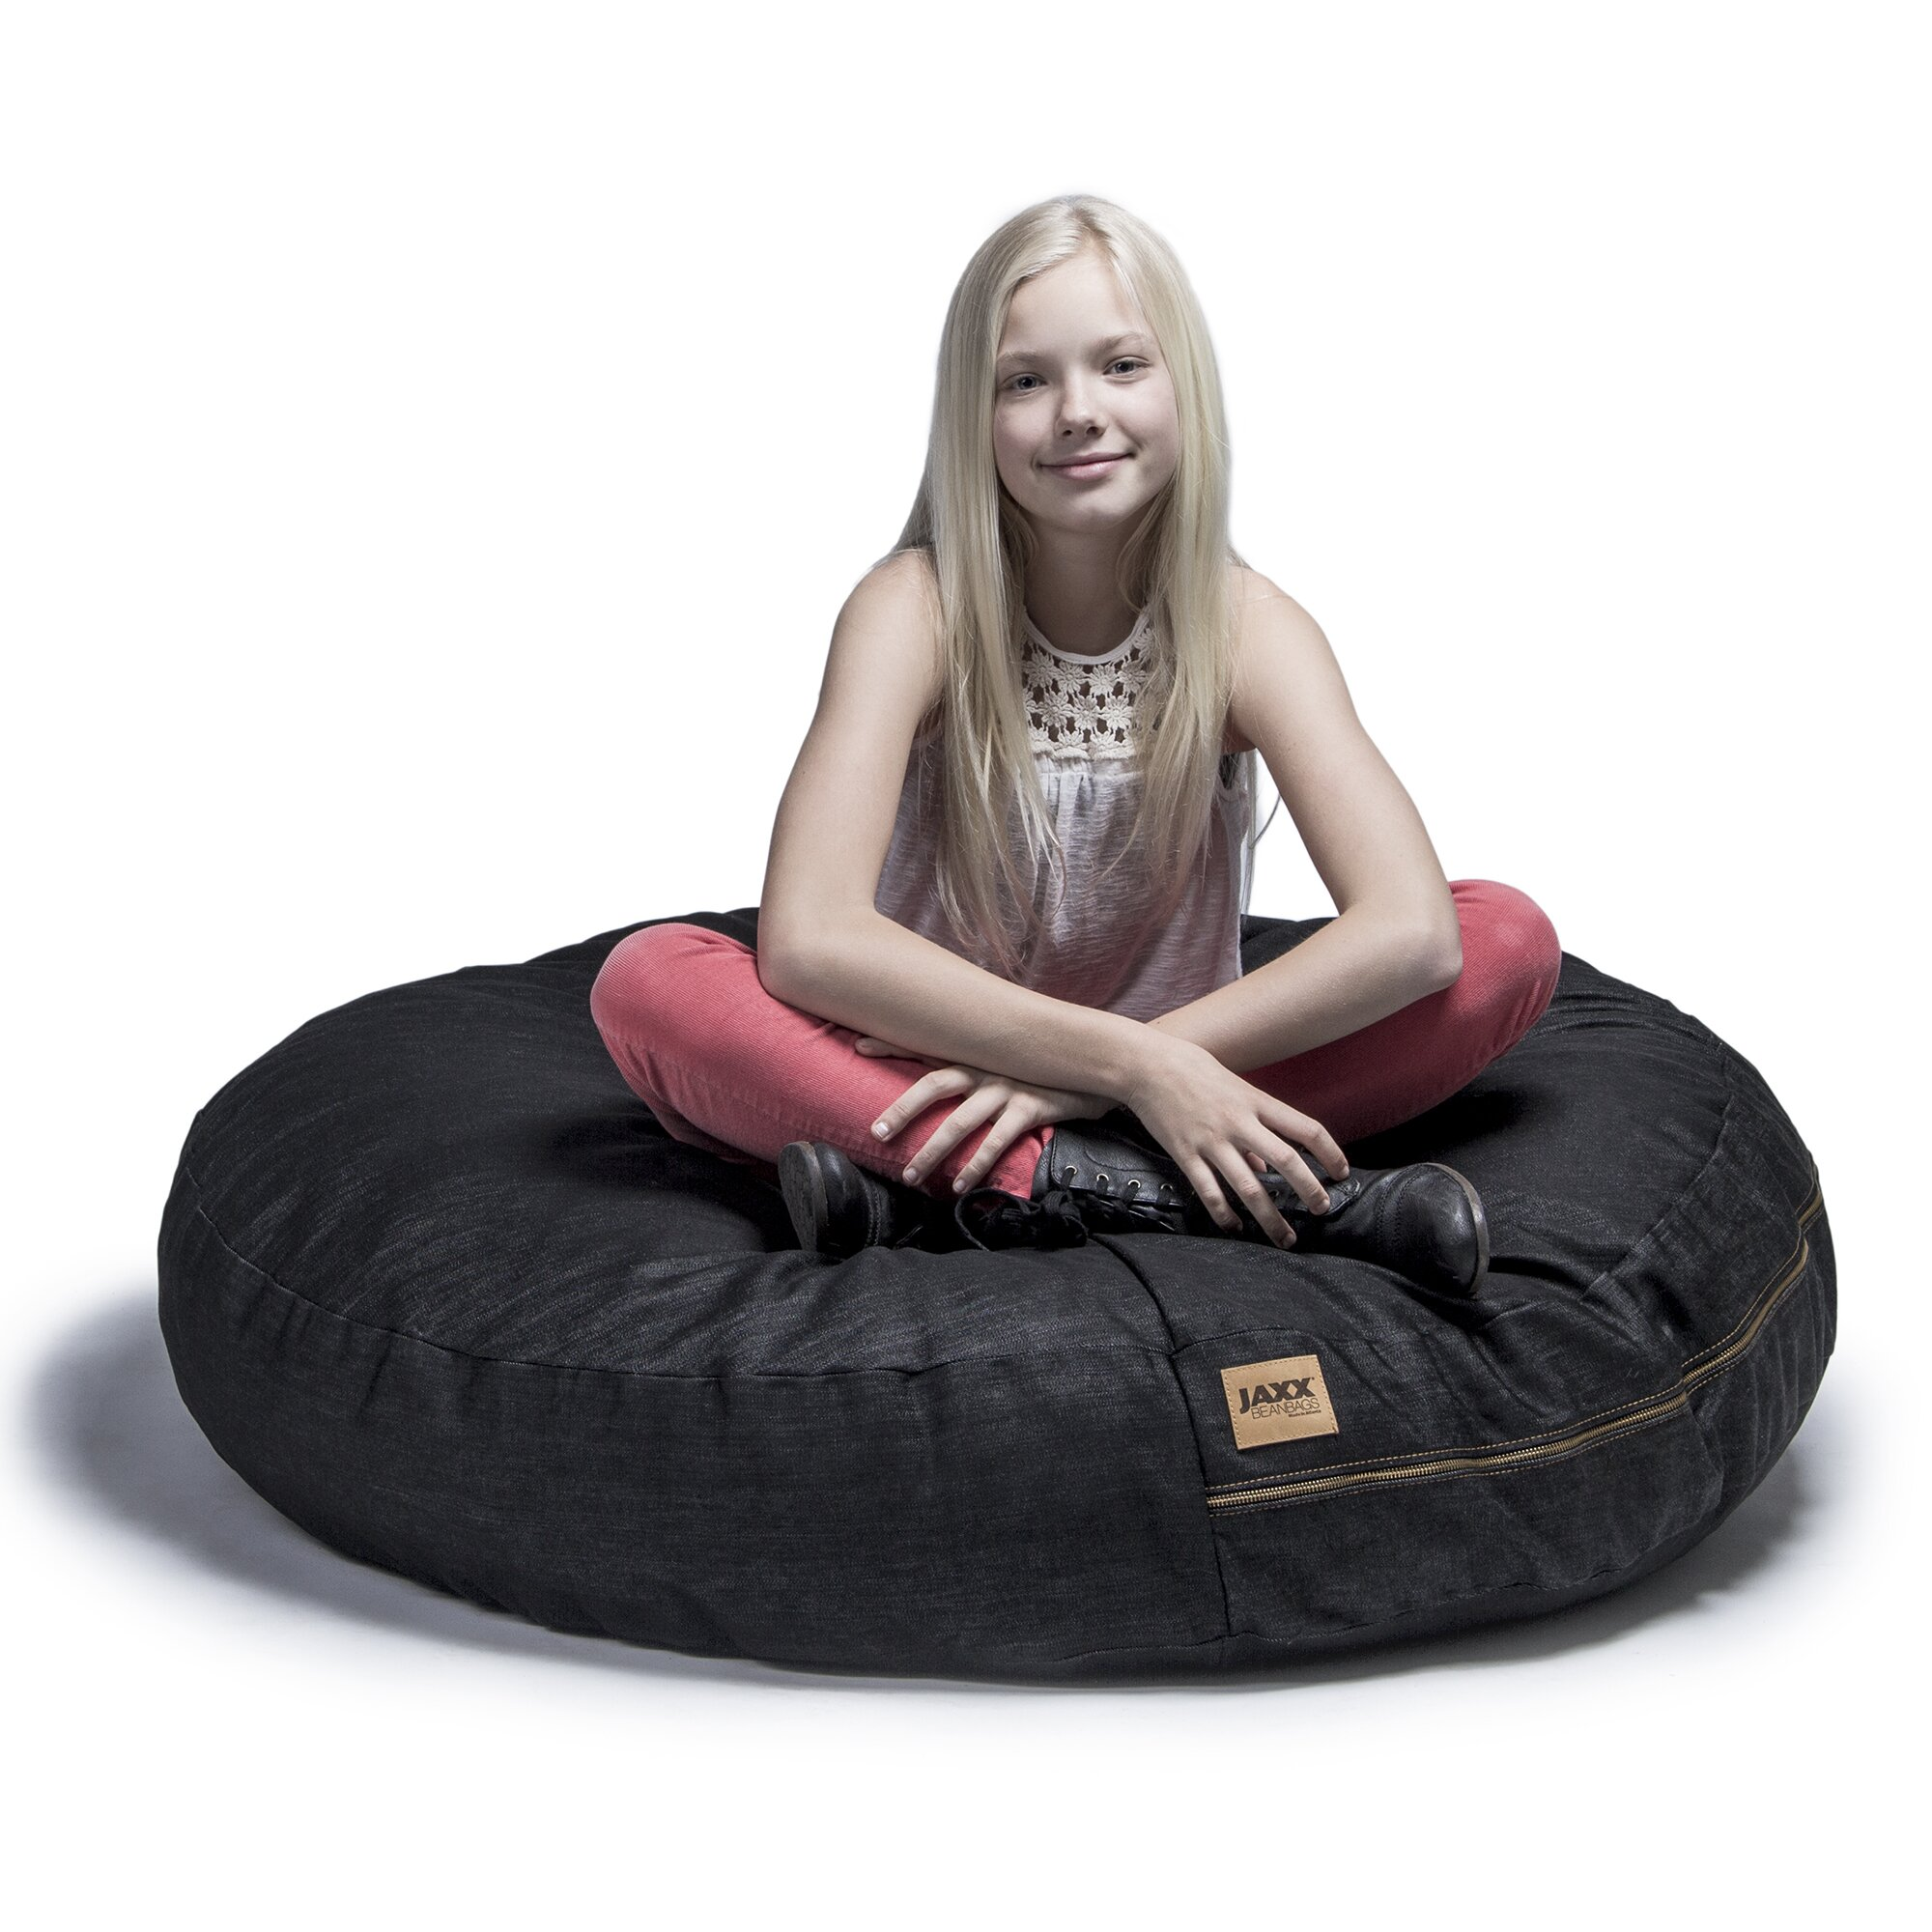 jaxx denim cocoon 4 39 bean bag chair wayfair. Black Bedroom Furniture Sets. Home Design Ideas